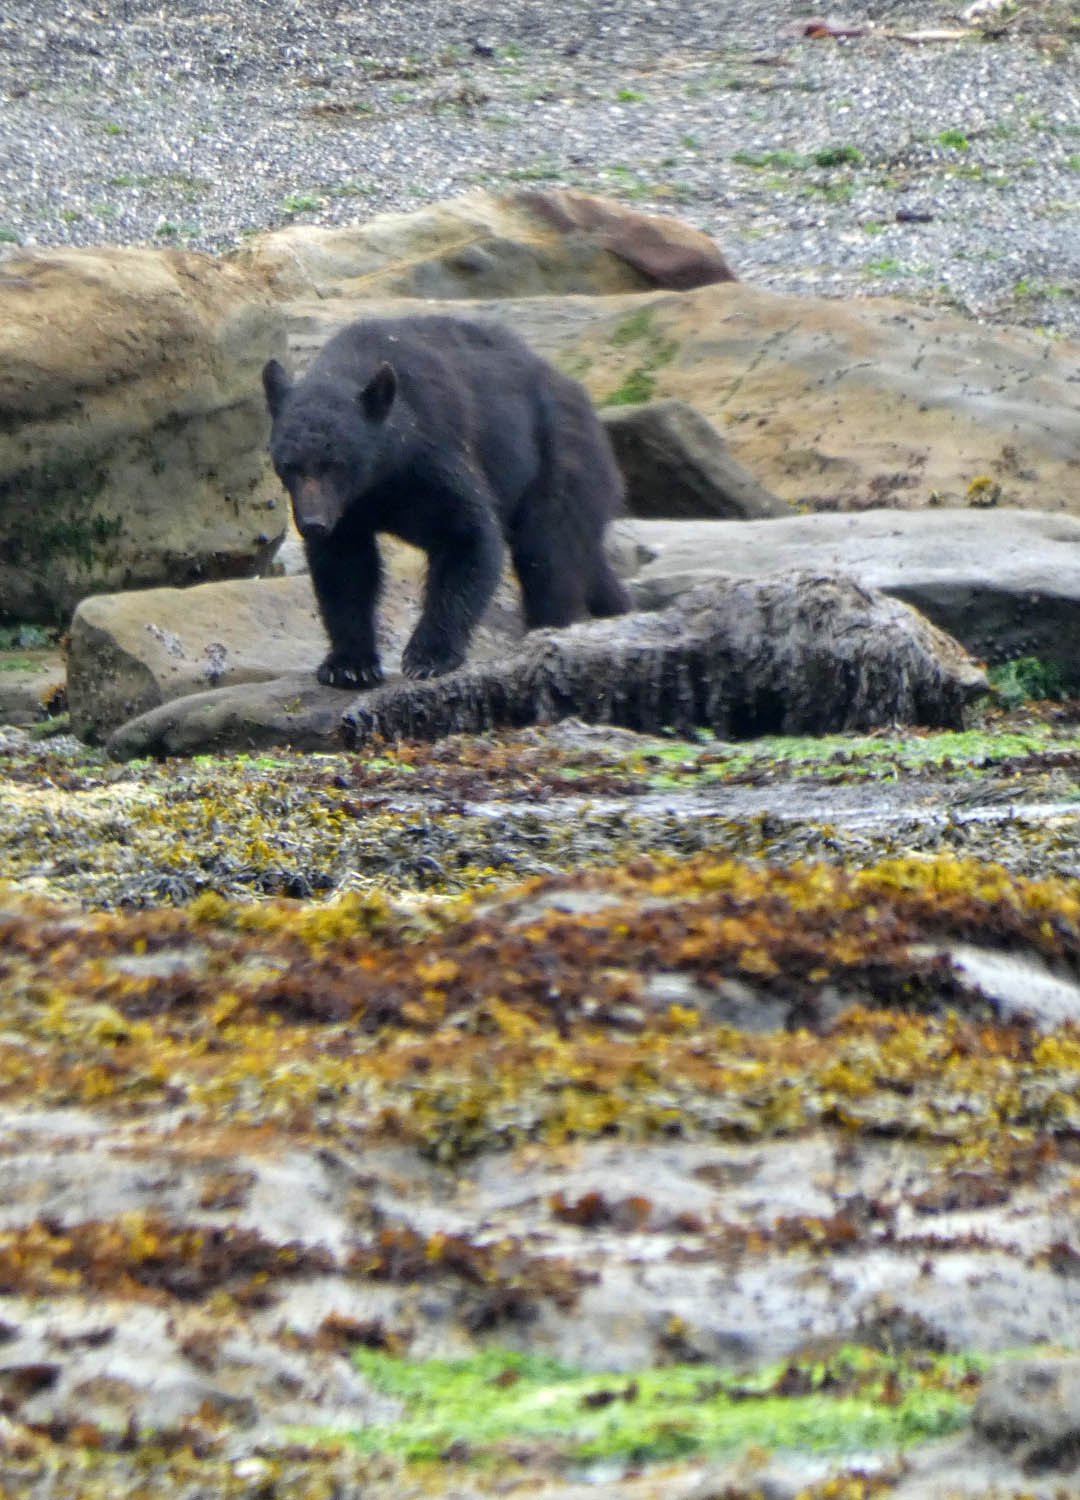 Visiting Bear, Nootka Island